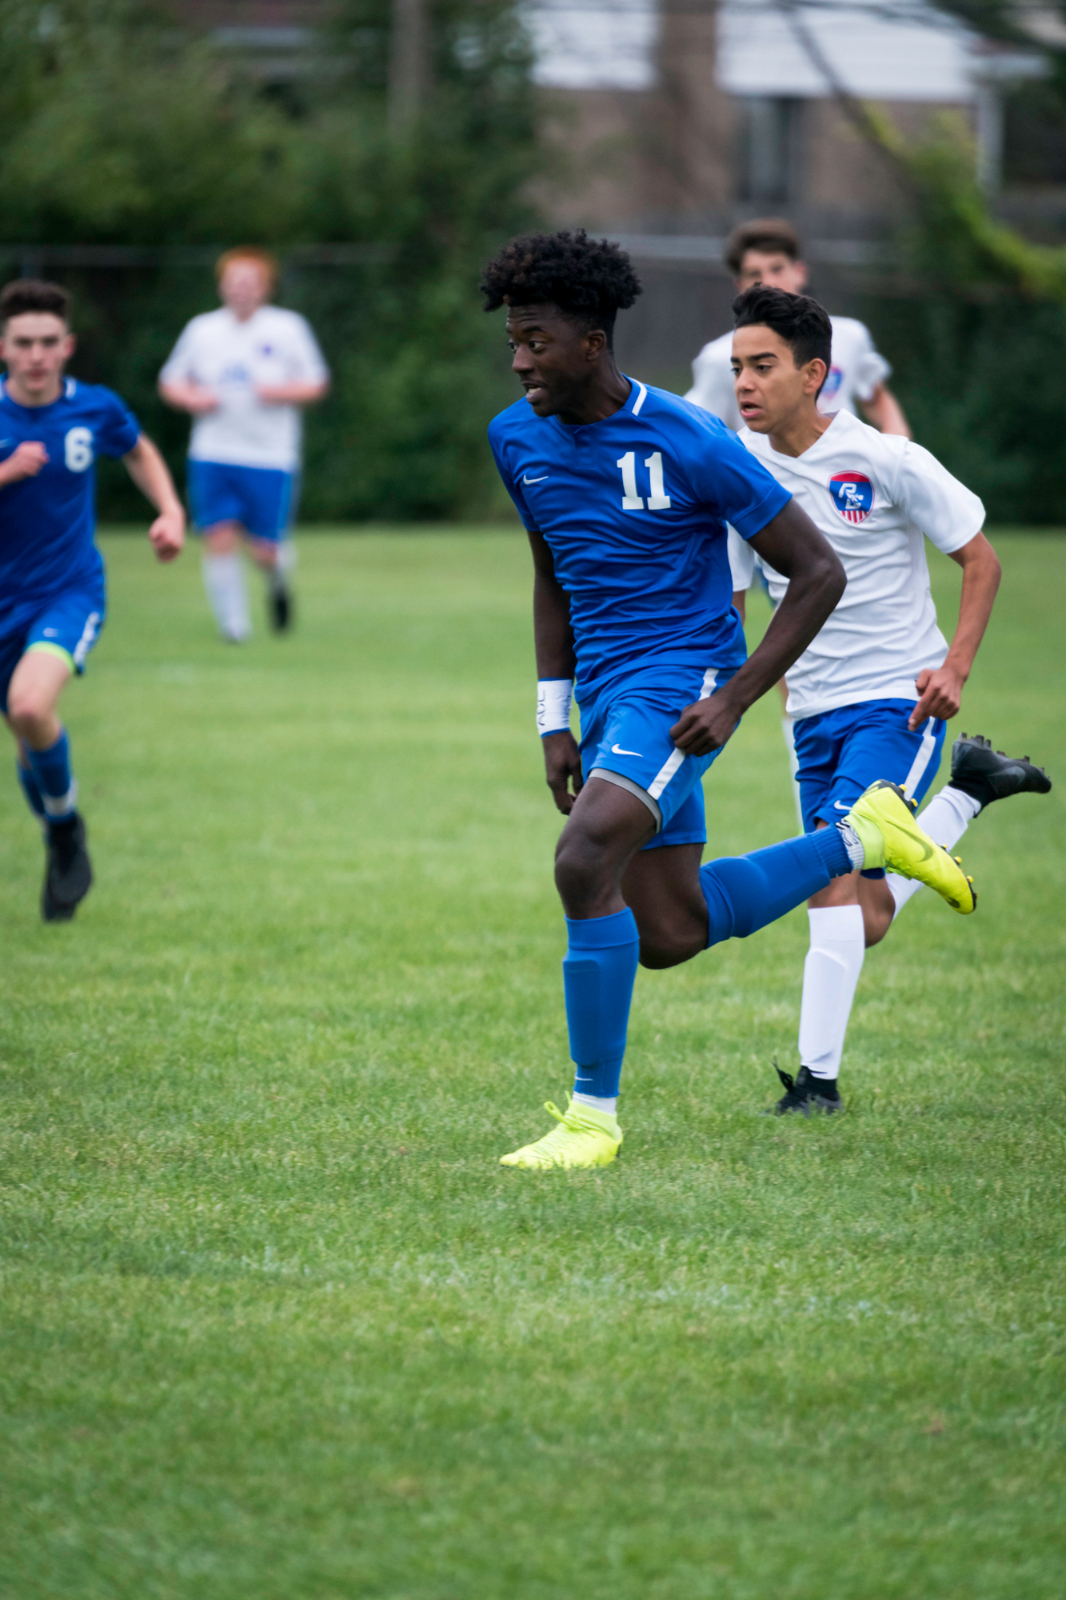 Little Earns All State Honors in Soccer